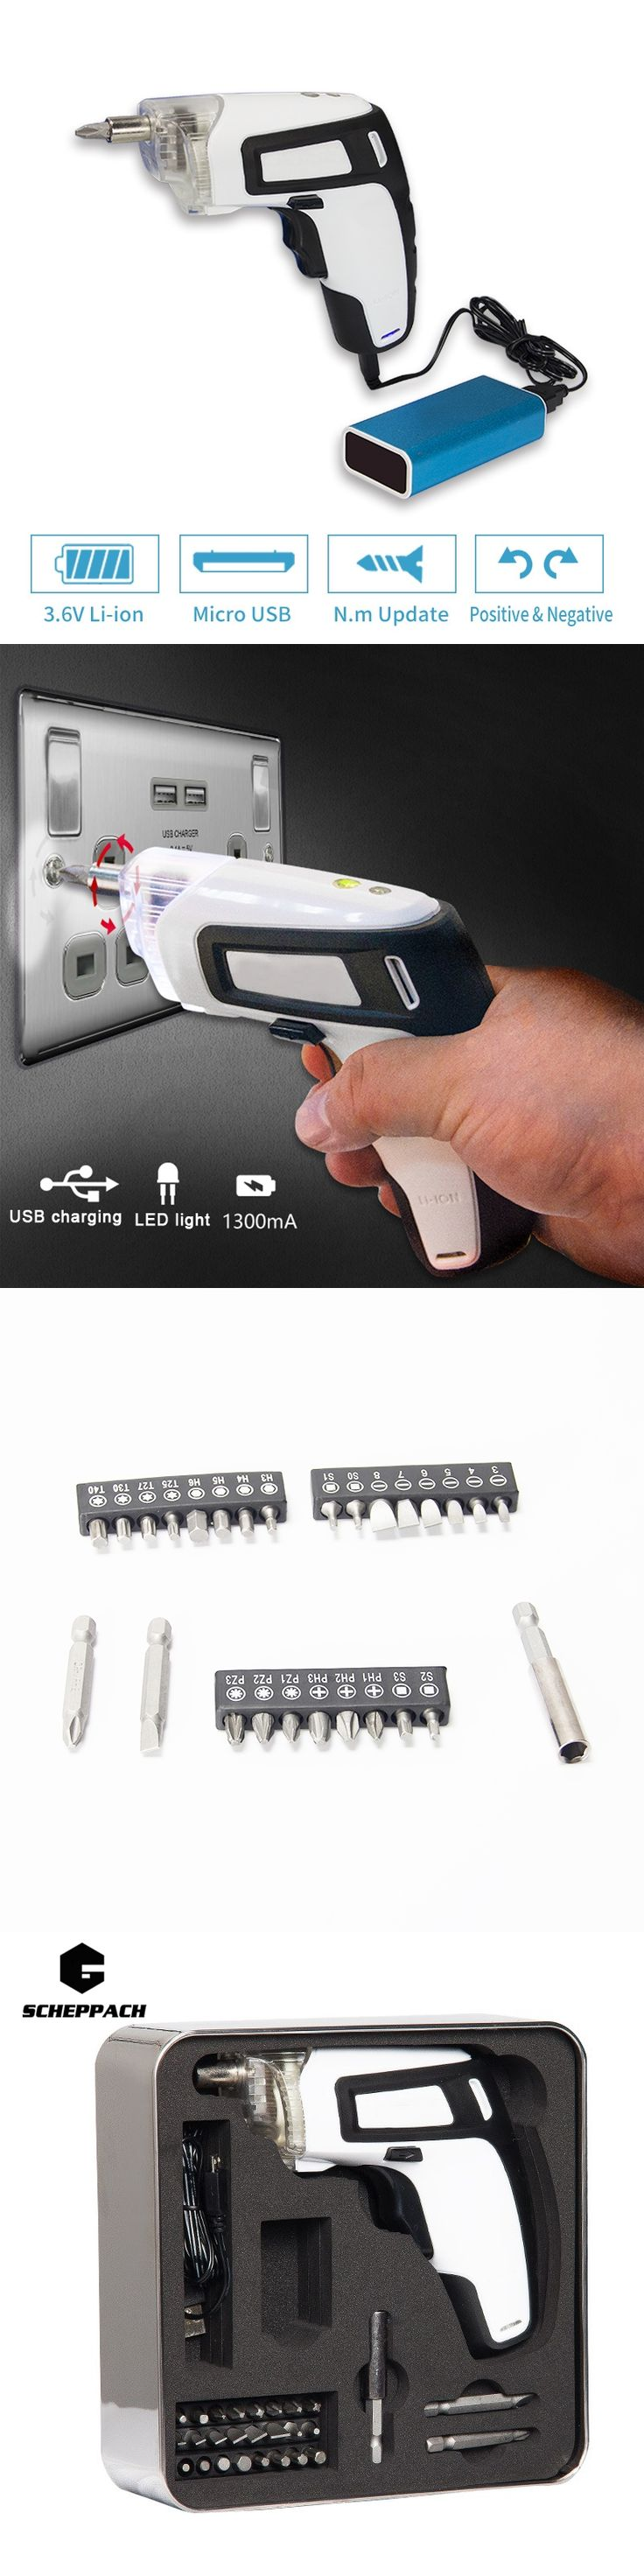 Crazy power USB charging 3.6V lithium battery cordless screwdriver Electric Screwdriver Mini drill Household DIY With LED